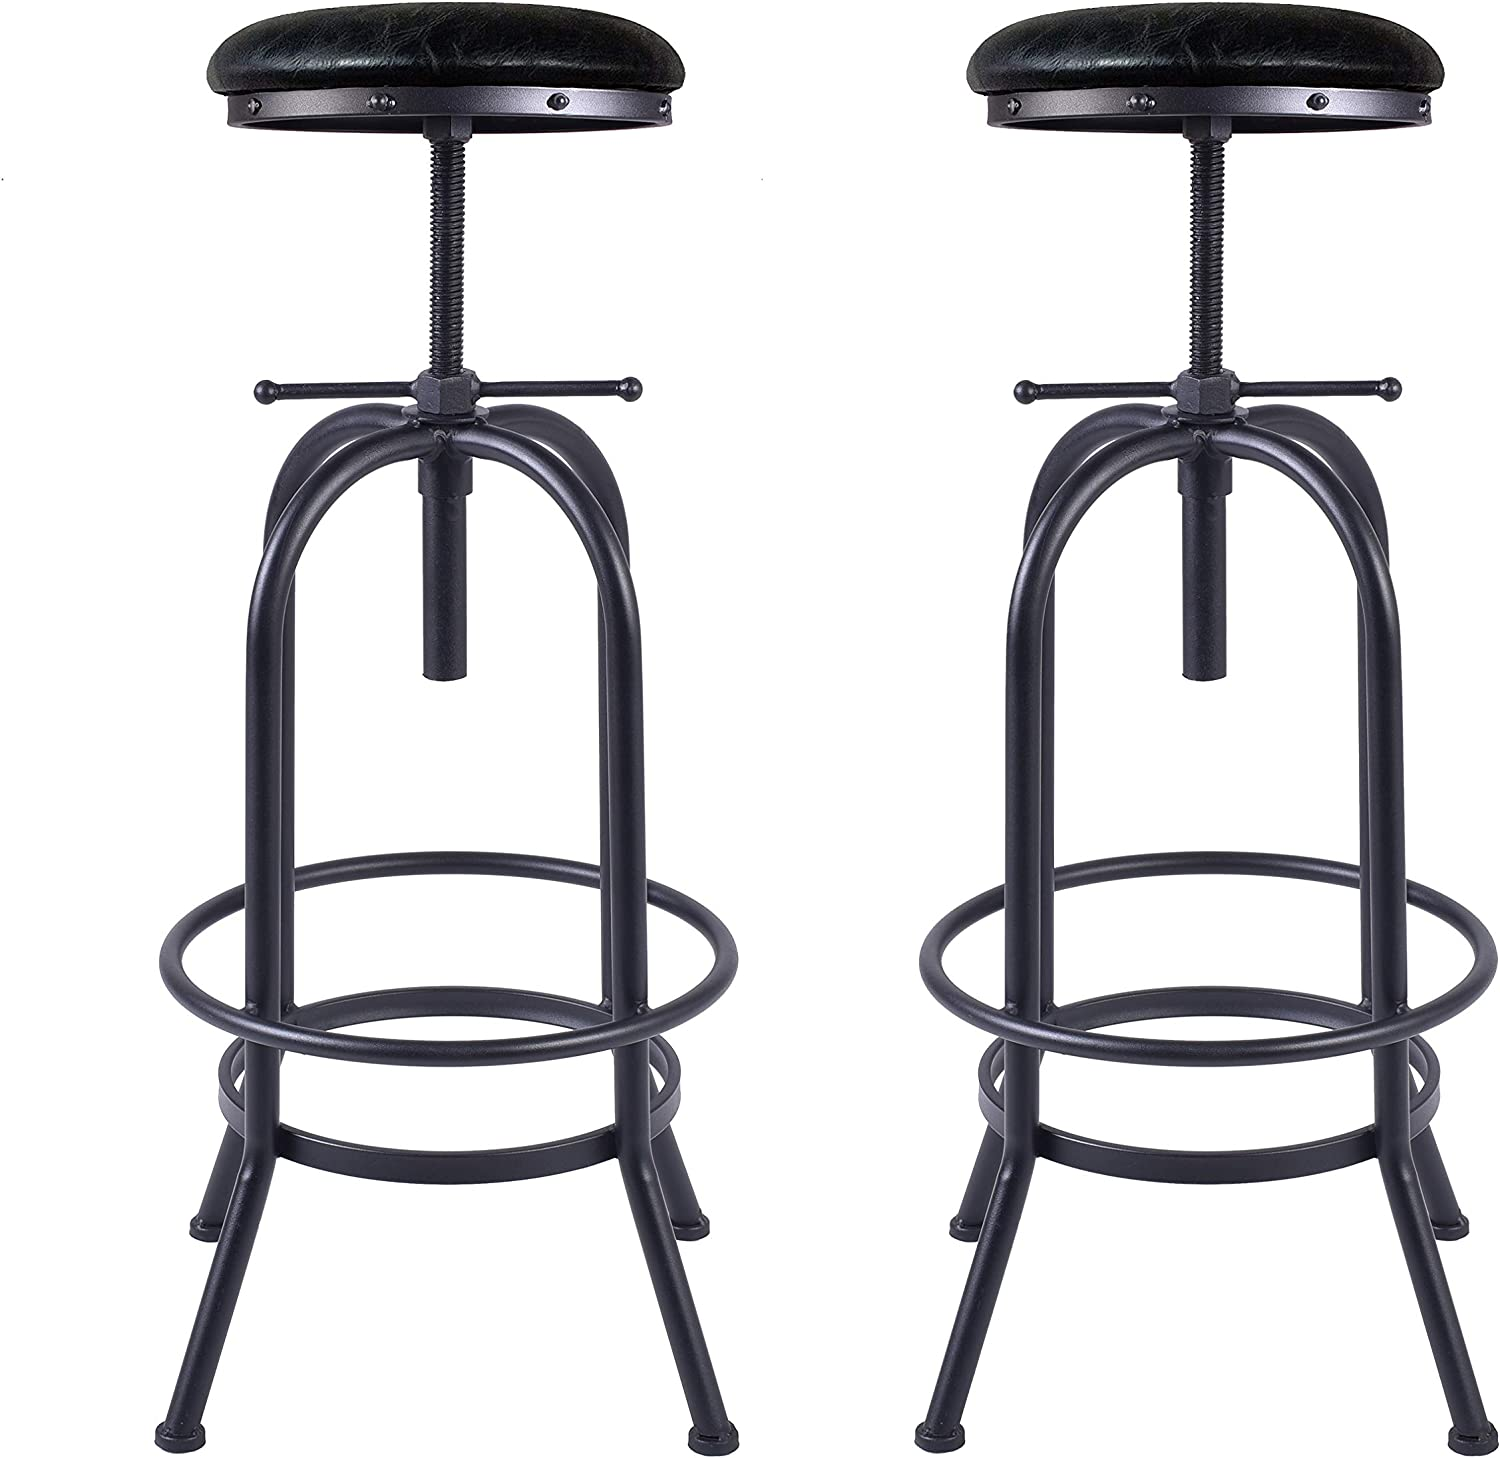 LOKKHAN Set of 2 Industrial Bar Stool-Swivel PU Leather Seat,Adjustable Metal Bar Stool,Kitchen Counter-Pub Height, 29-35 Inch Extra Tall Bar Stool,Fully Welded